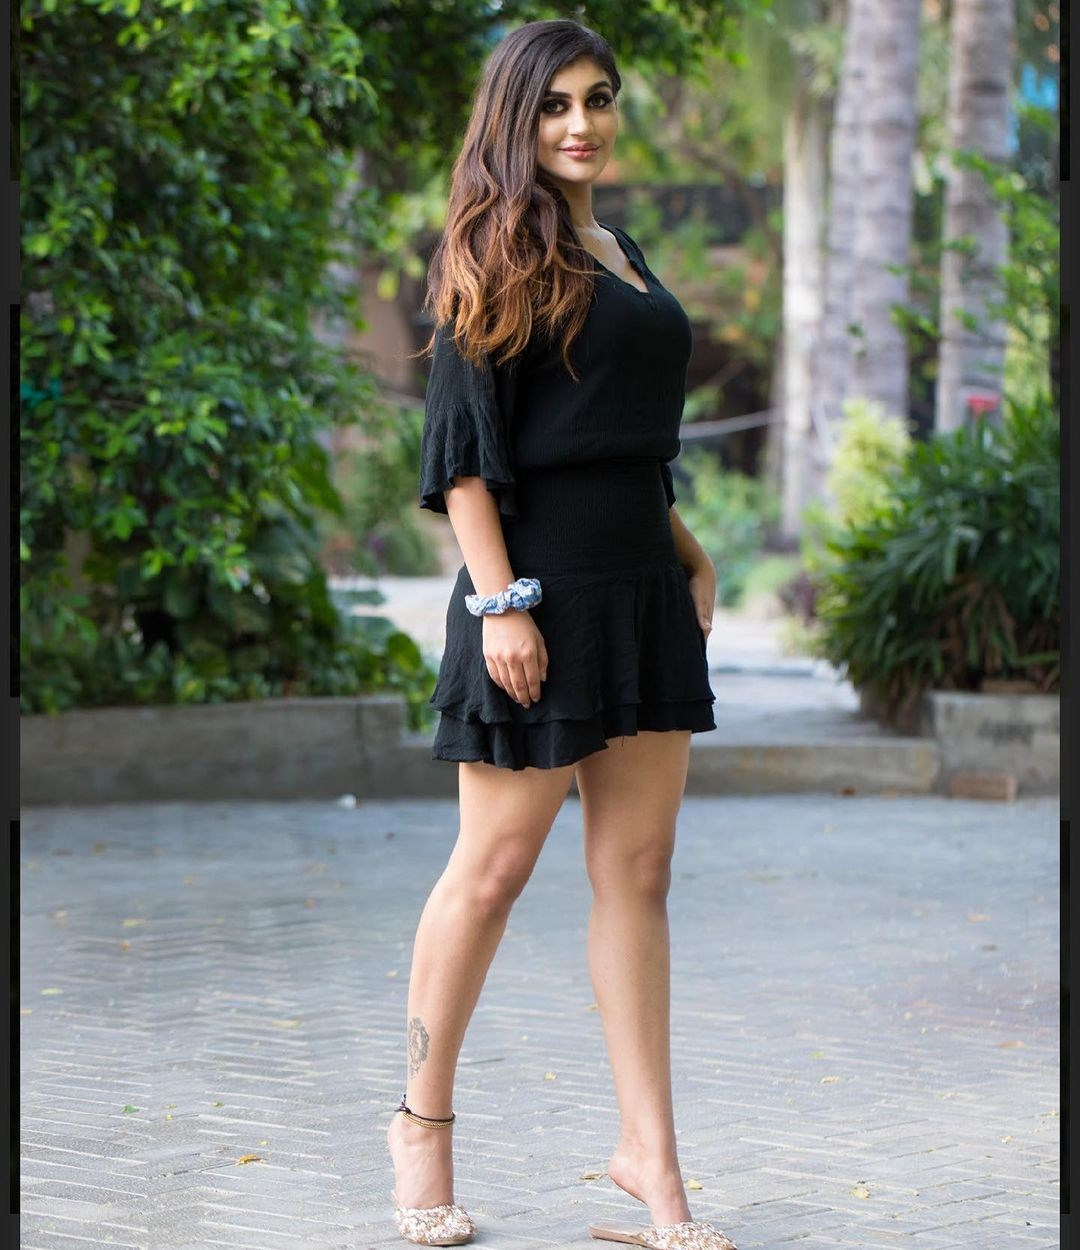 Bollywood actress yashika aannand beautiful clicks-Telugu Actress Yashika Aannand, Bollywood Actress Yashika Aannand Beautiful Clicks, Images, Yashika Aannand, Yashika Aannand Education, Yashika Aannand Facebook, Yashika Aannand Family, Yashika Aannand Family Photos, Yashika Aannand Films, Yashika Aannand Height, Yashika Aannand In Roja Serial Photos,Spicy Hot Pics,Images,High Resolution WallPapers Download